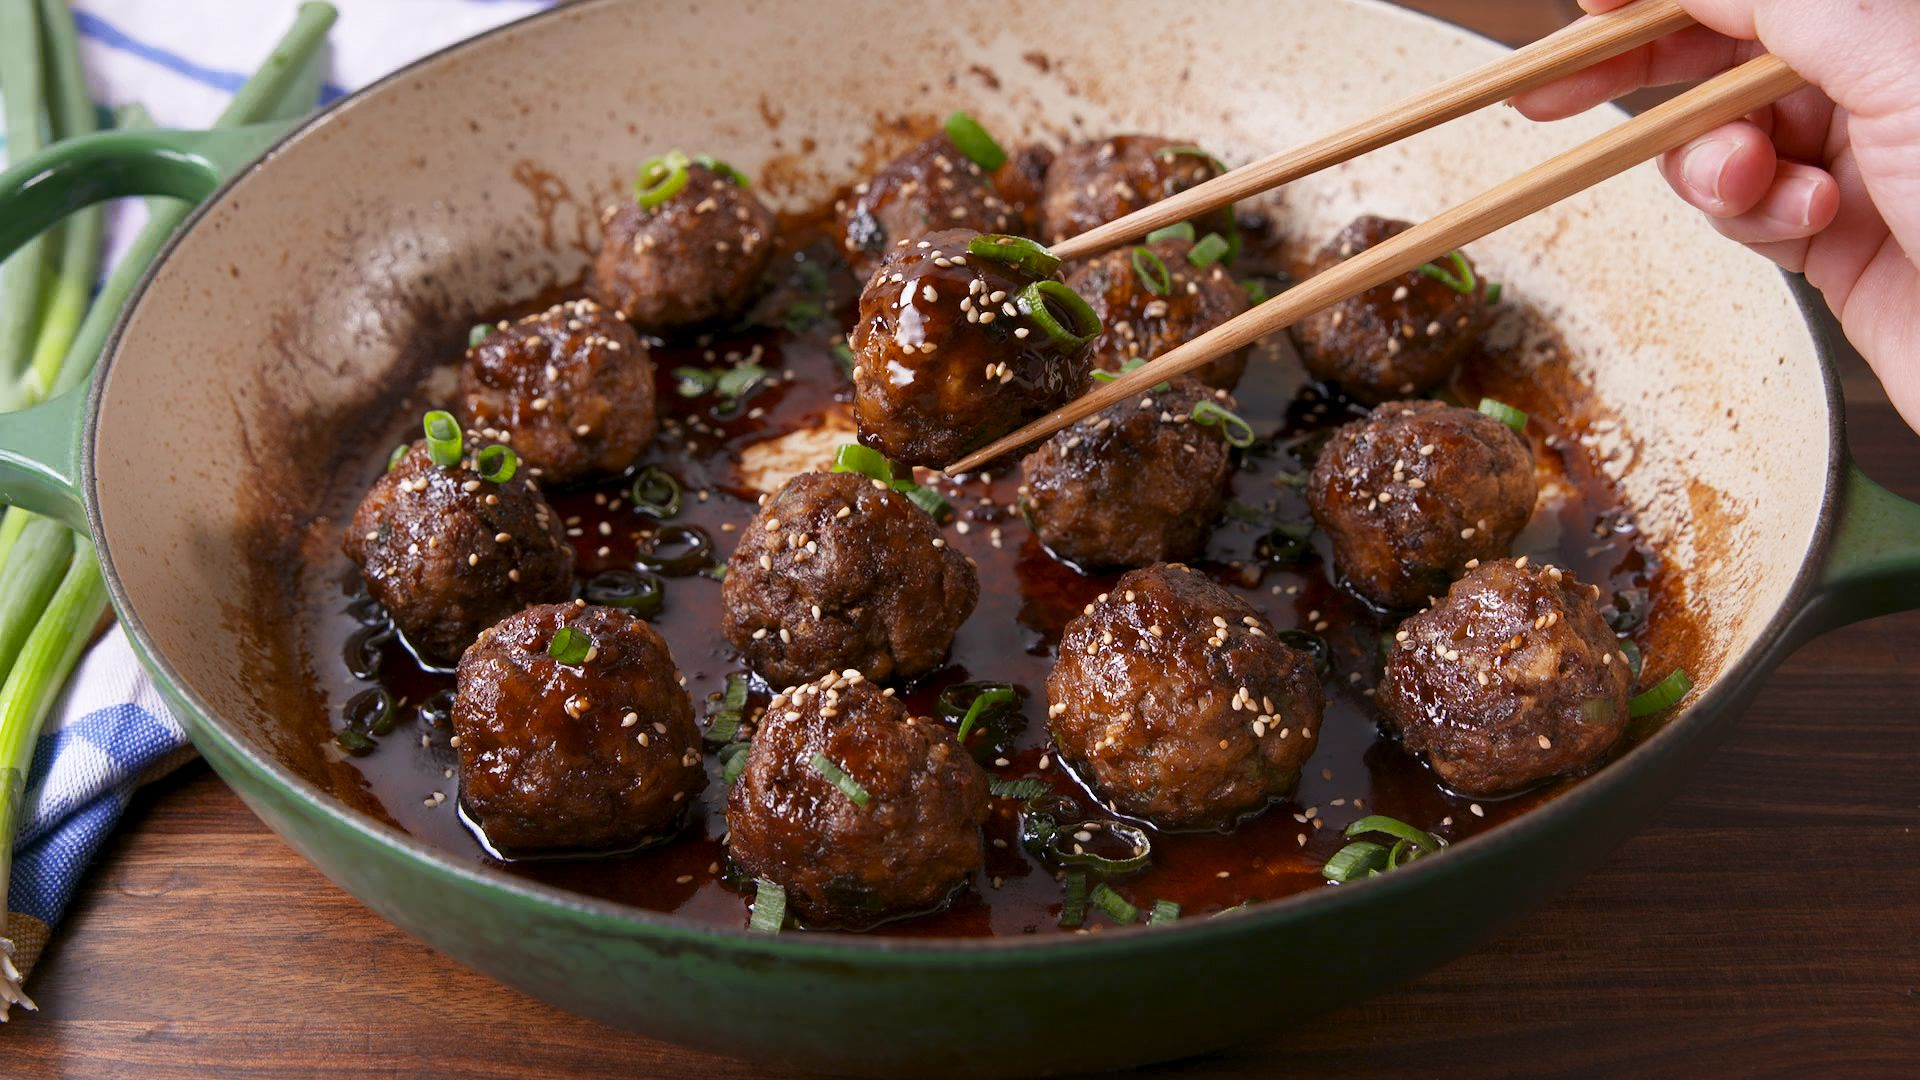 Cloudy With A Chance Of Meatballs 2 Sony Pictures Pictures of meat balls